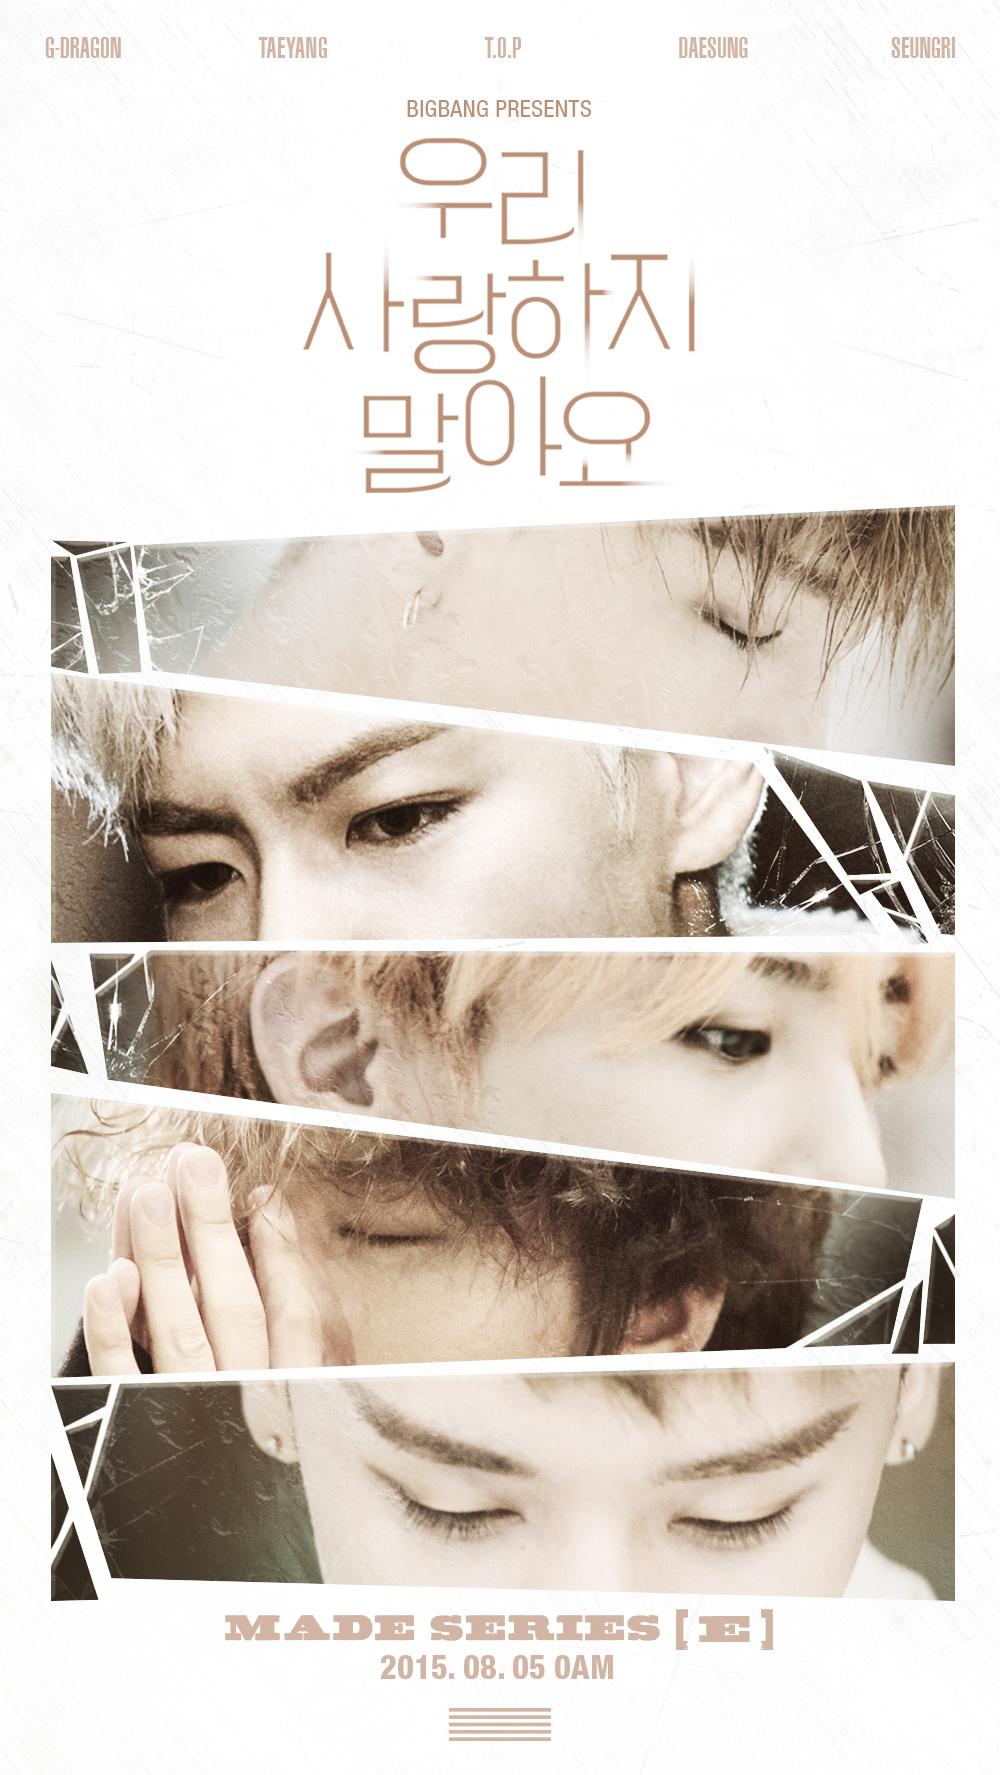 BIGBANG MADE Series E Poster